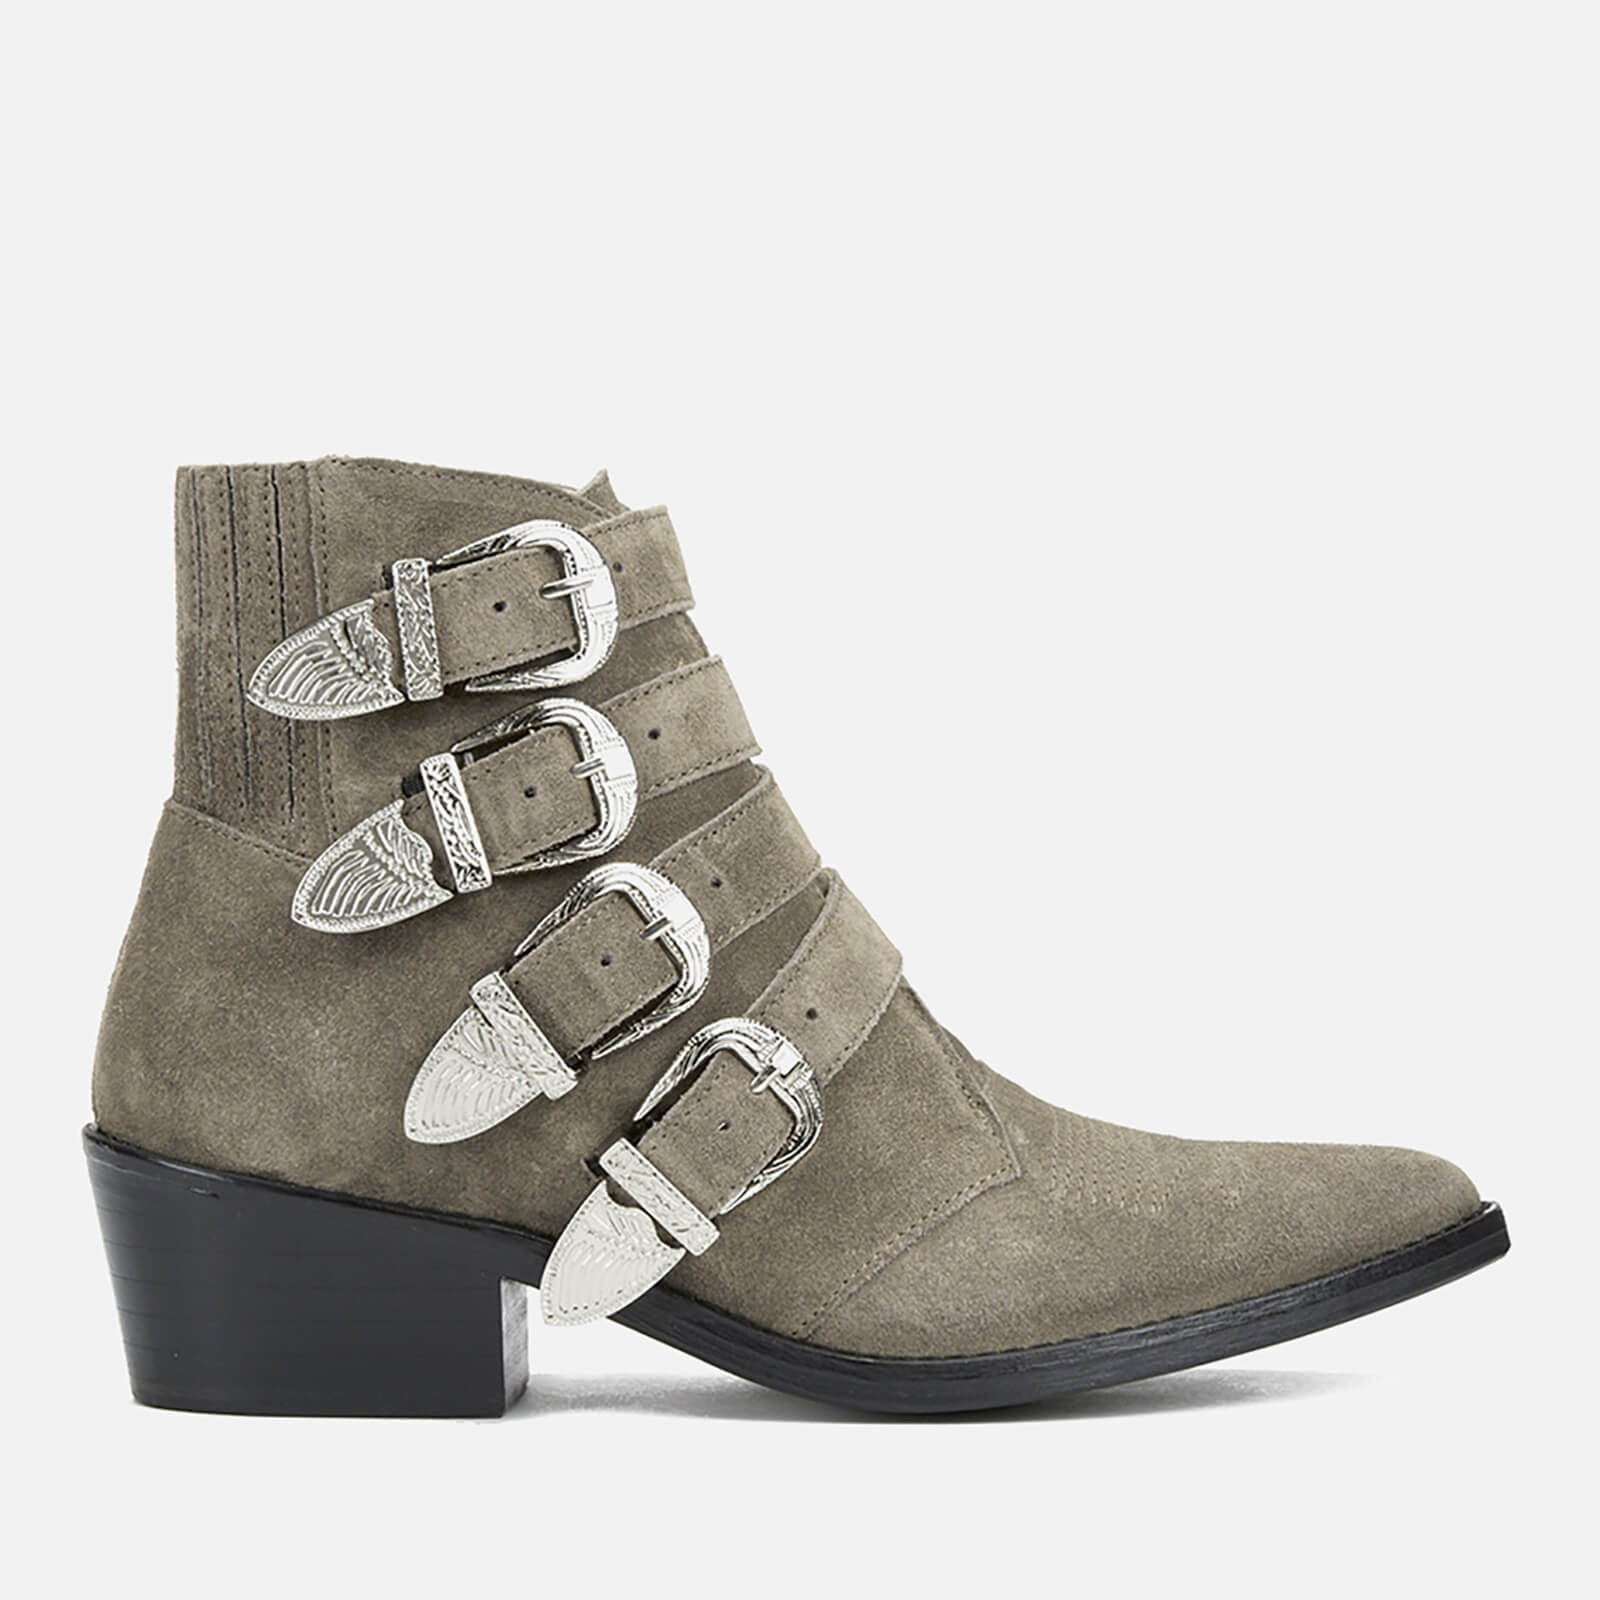 df92ed69beac9f Toga Pulla Women s Buckle Side Suede Heeled Ankle Boots - Khaki Suede